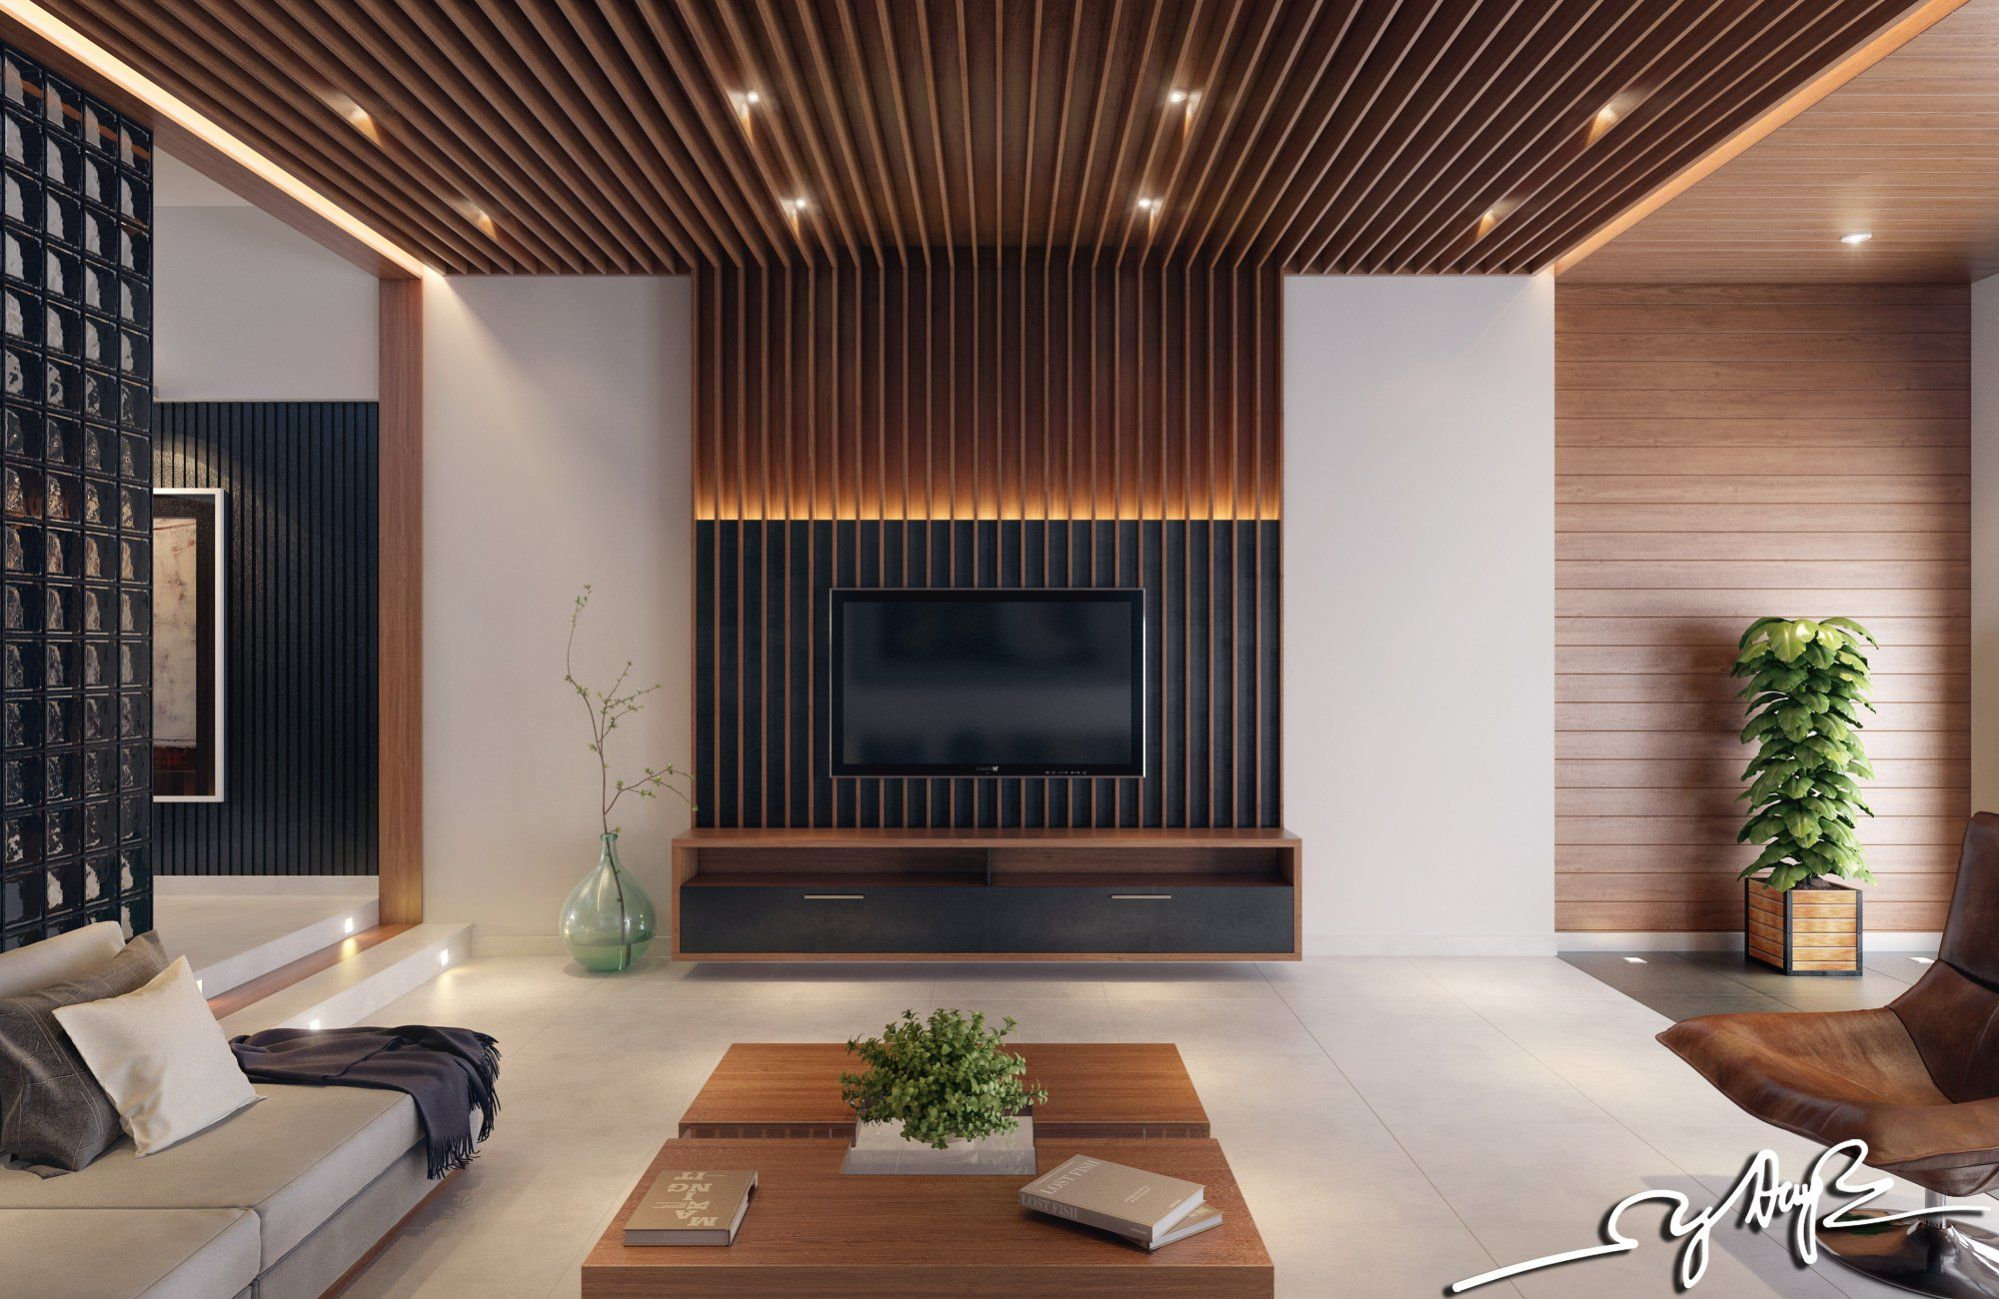 The unique wood paneling which positions plans perpendicular to wall itself is unusual and very visually interesting also interior design close nature rich themes indoor rh za pinterest